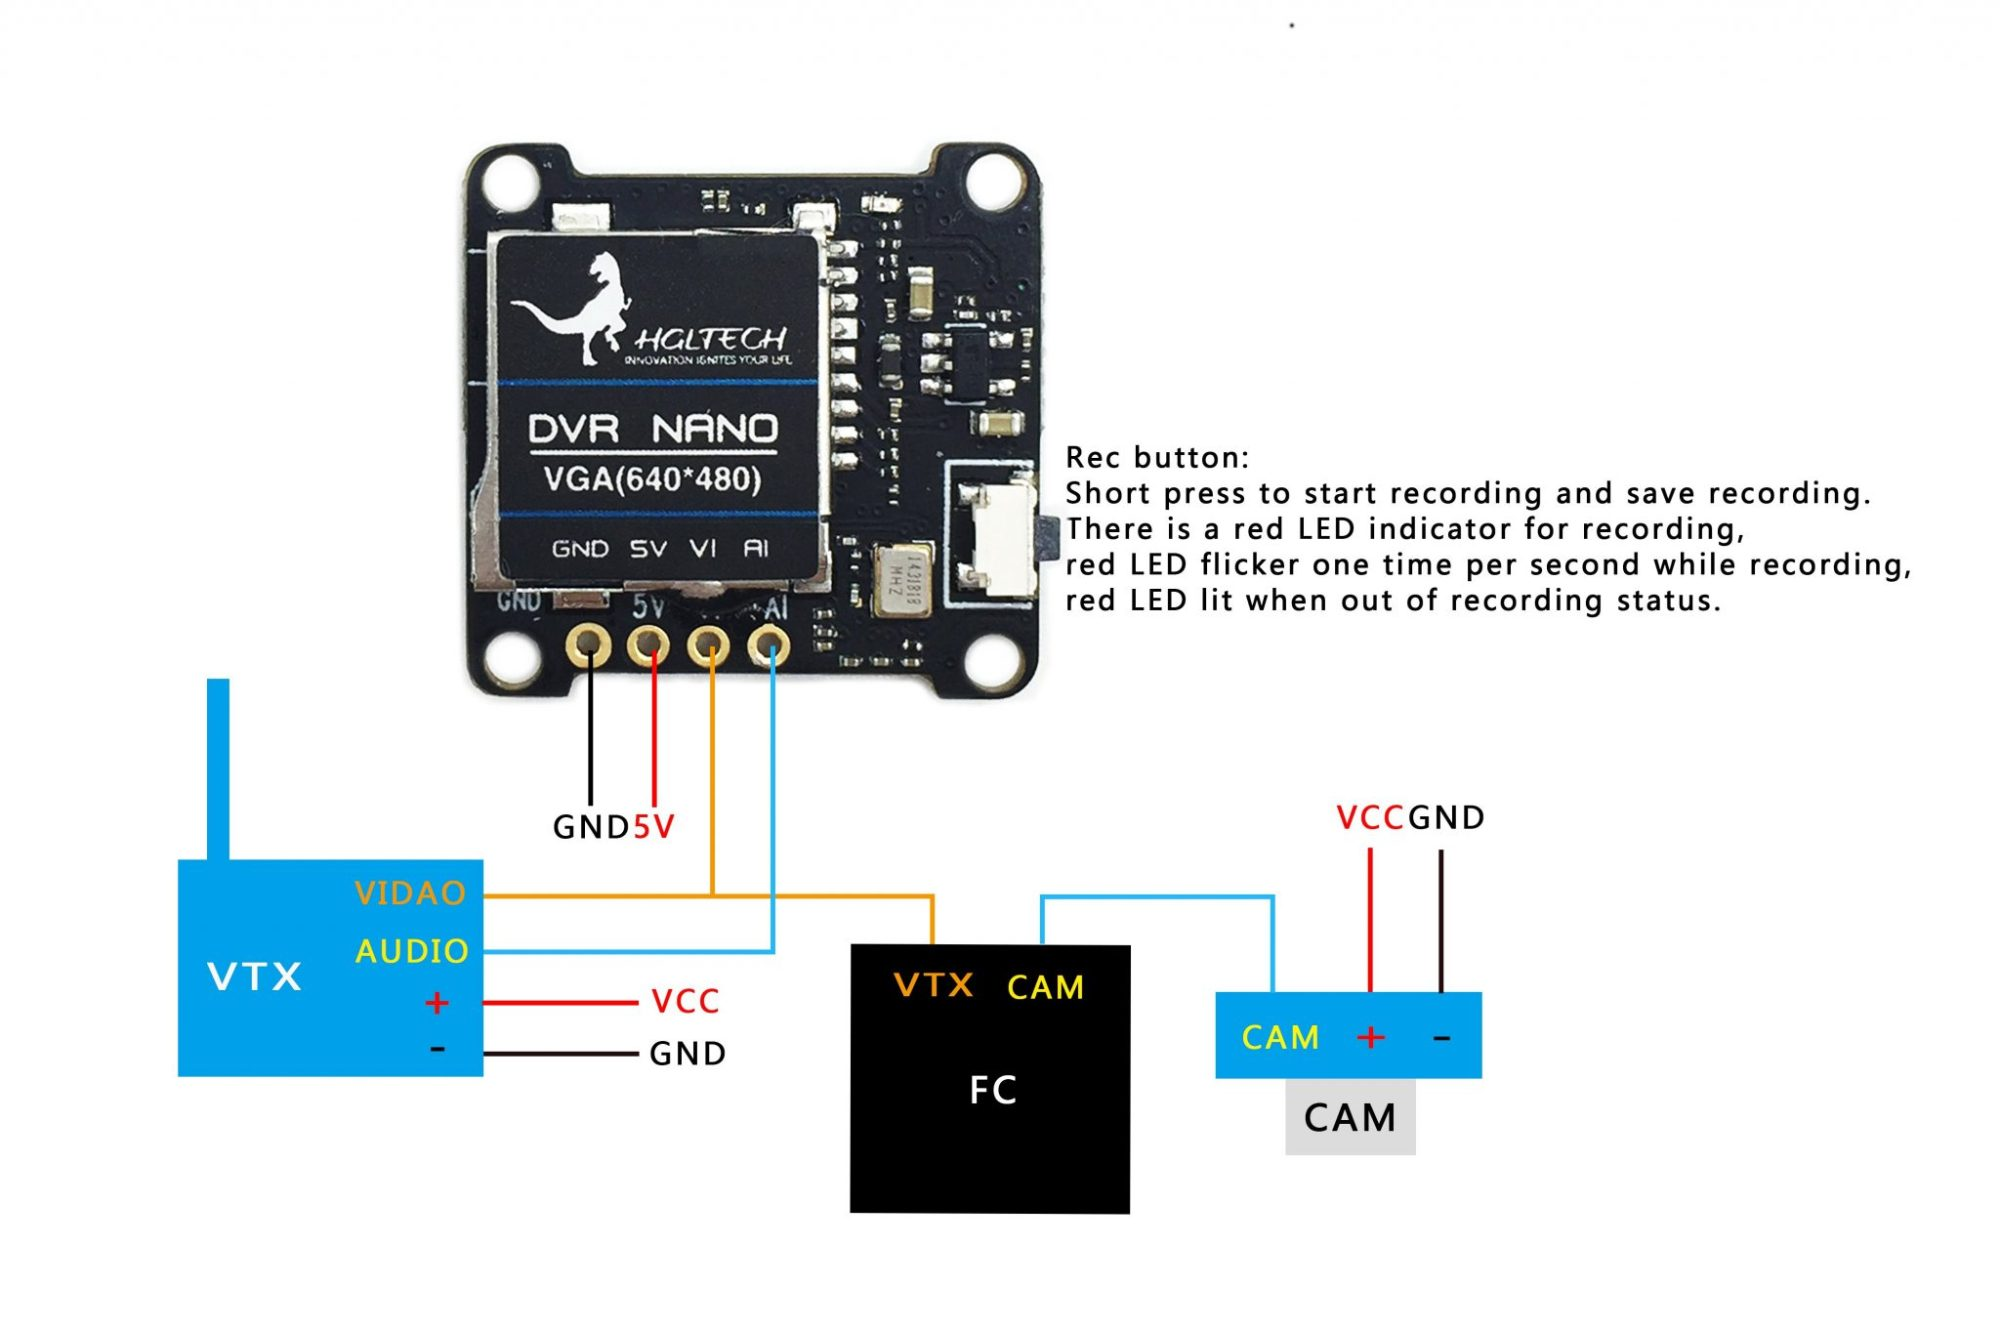 hight resolution of hglrc dvr nano wiring diagram and operation